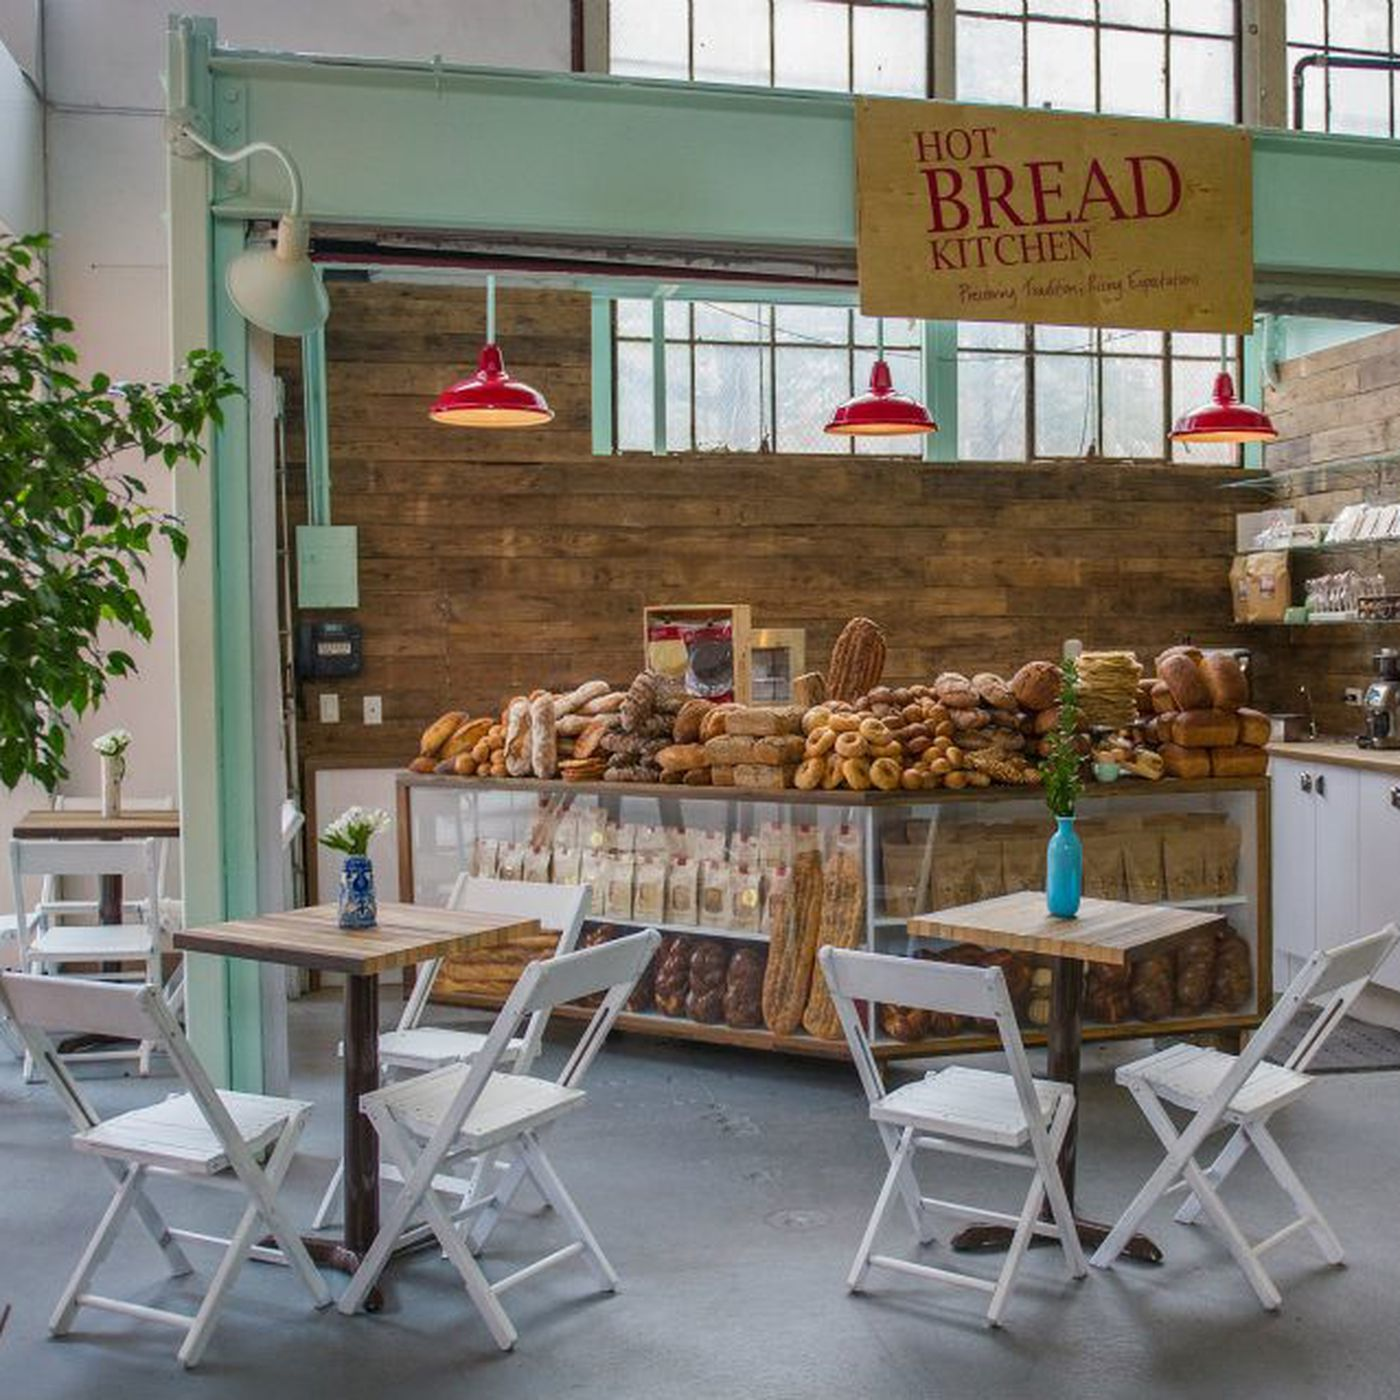 hot bread kitchen is kickstarting a bread baking scholarship program for low income women eater ny - Hot Bread Kitchen